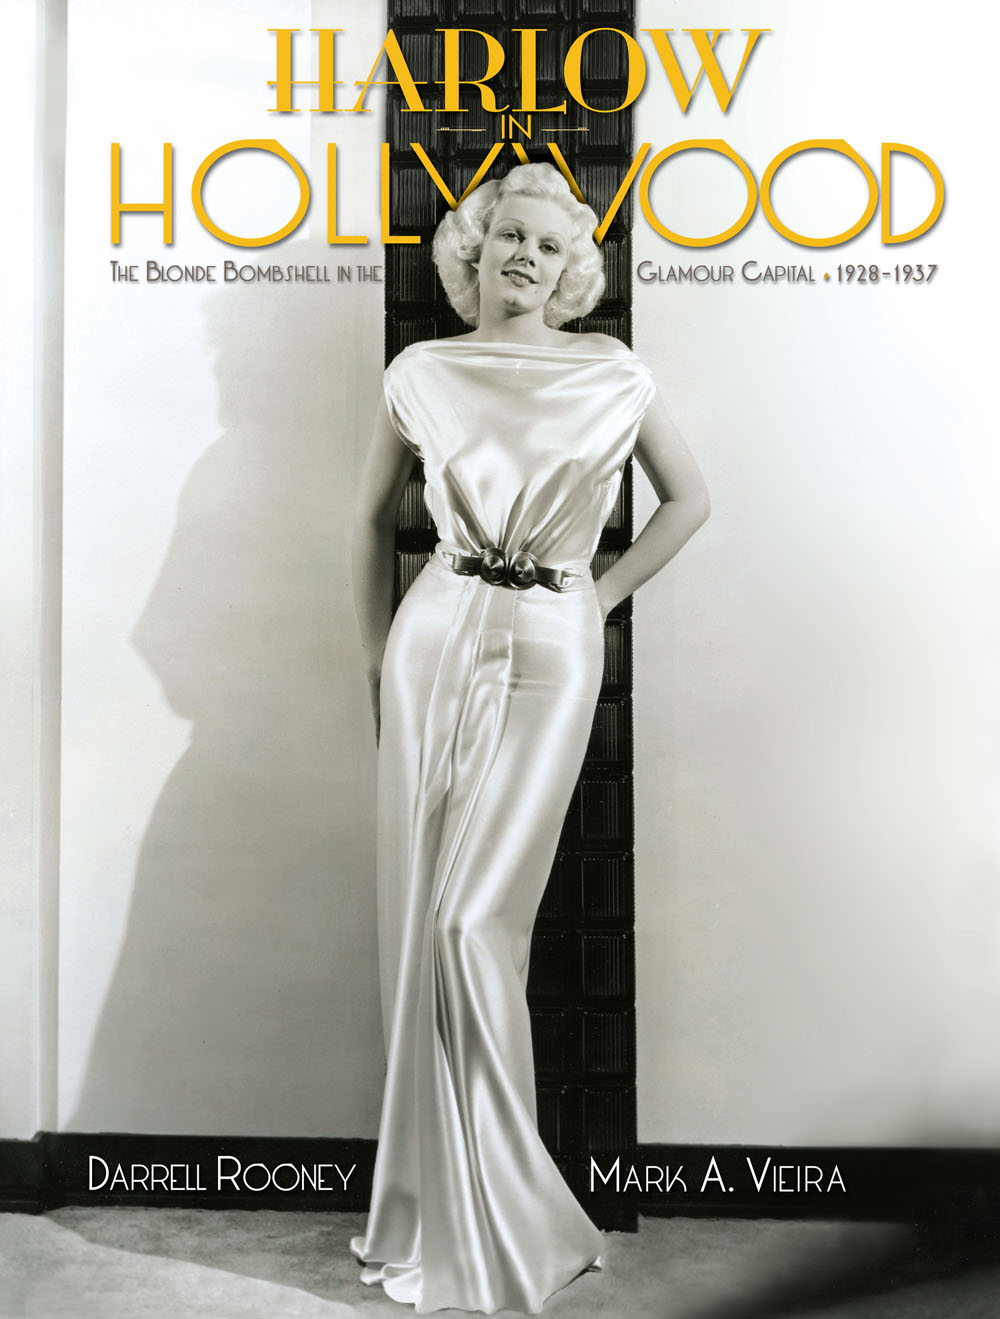 Jean Harlow in Hollywood, Mark Vieira, Darrell Rooney